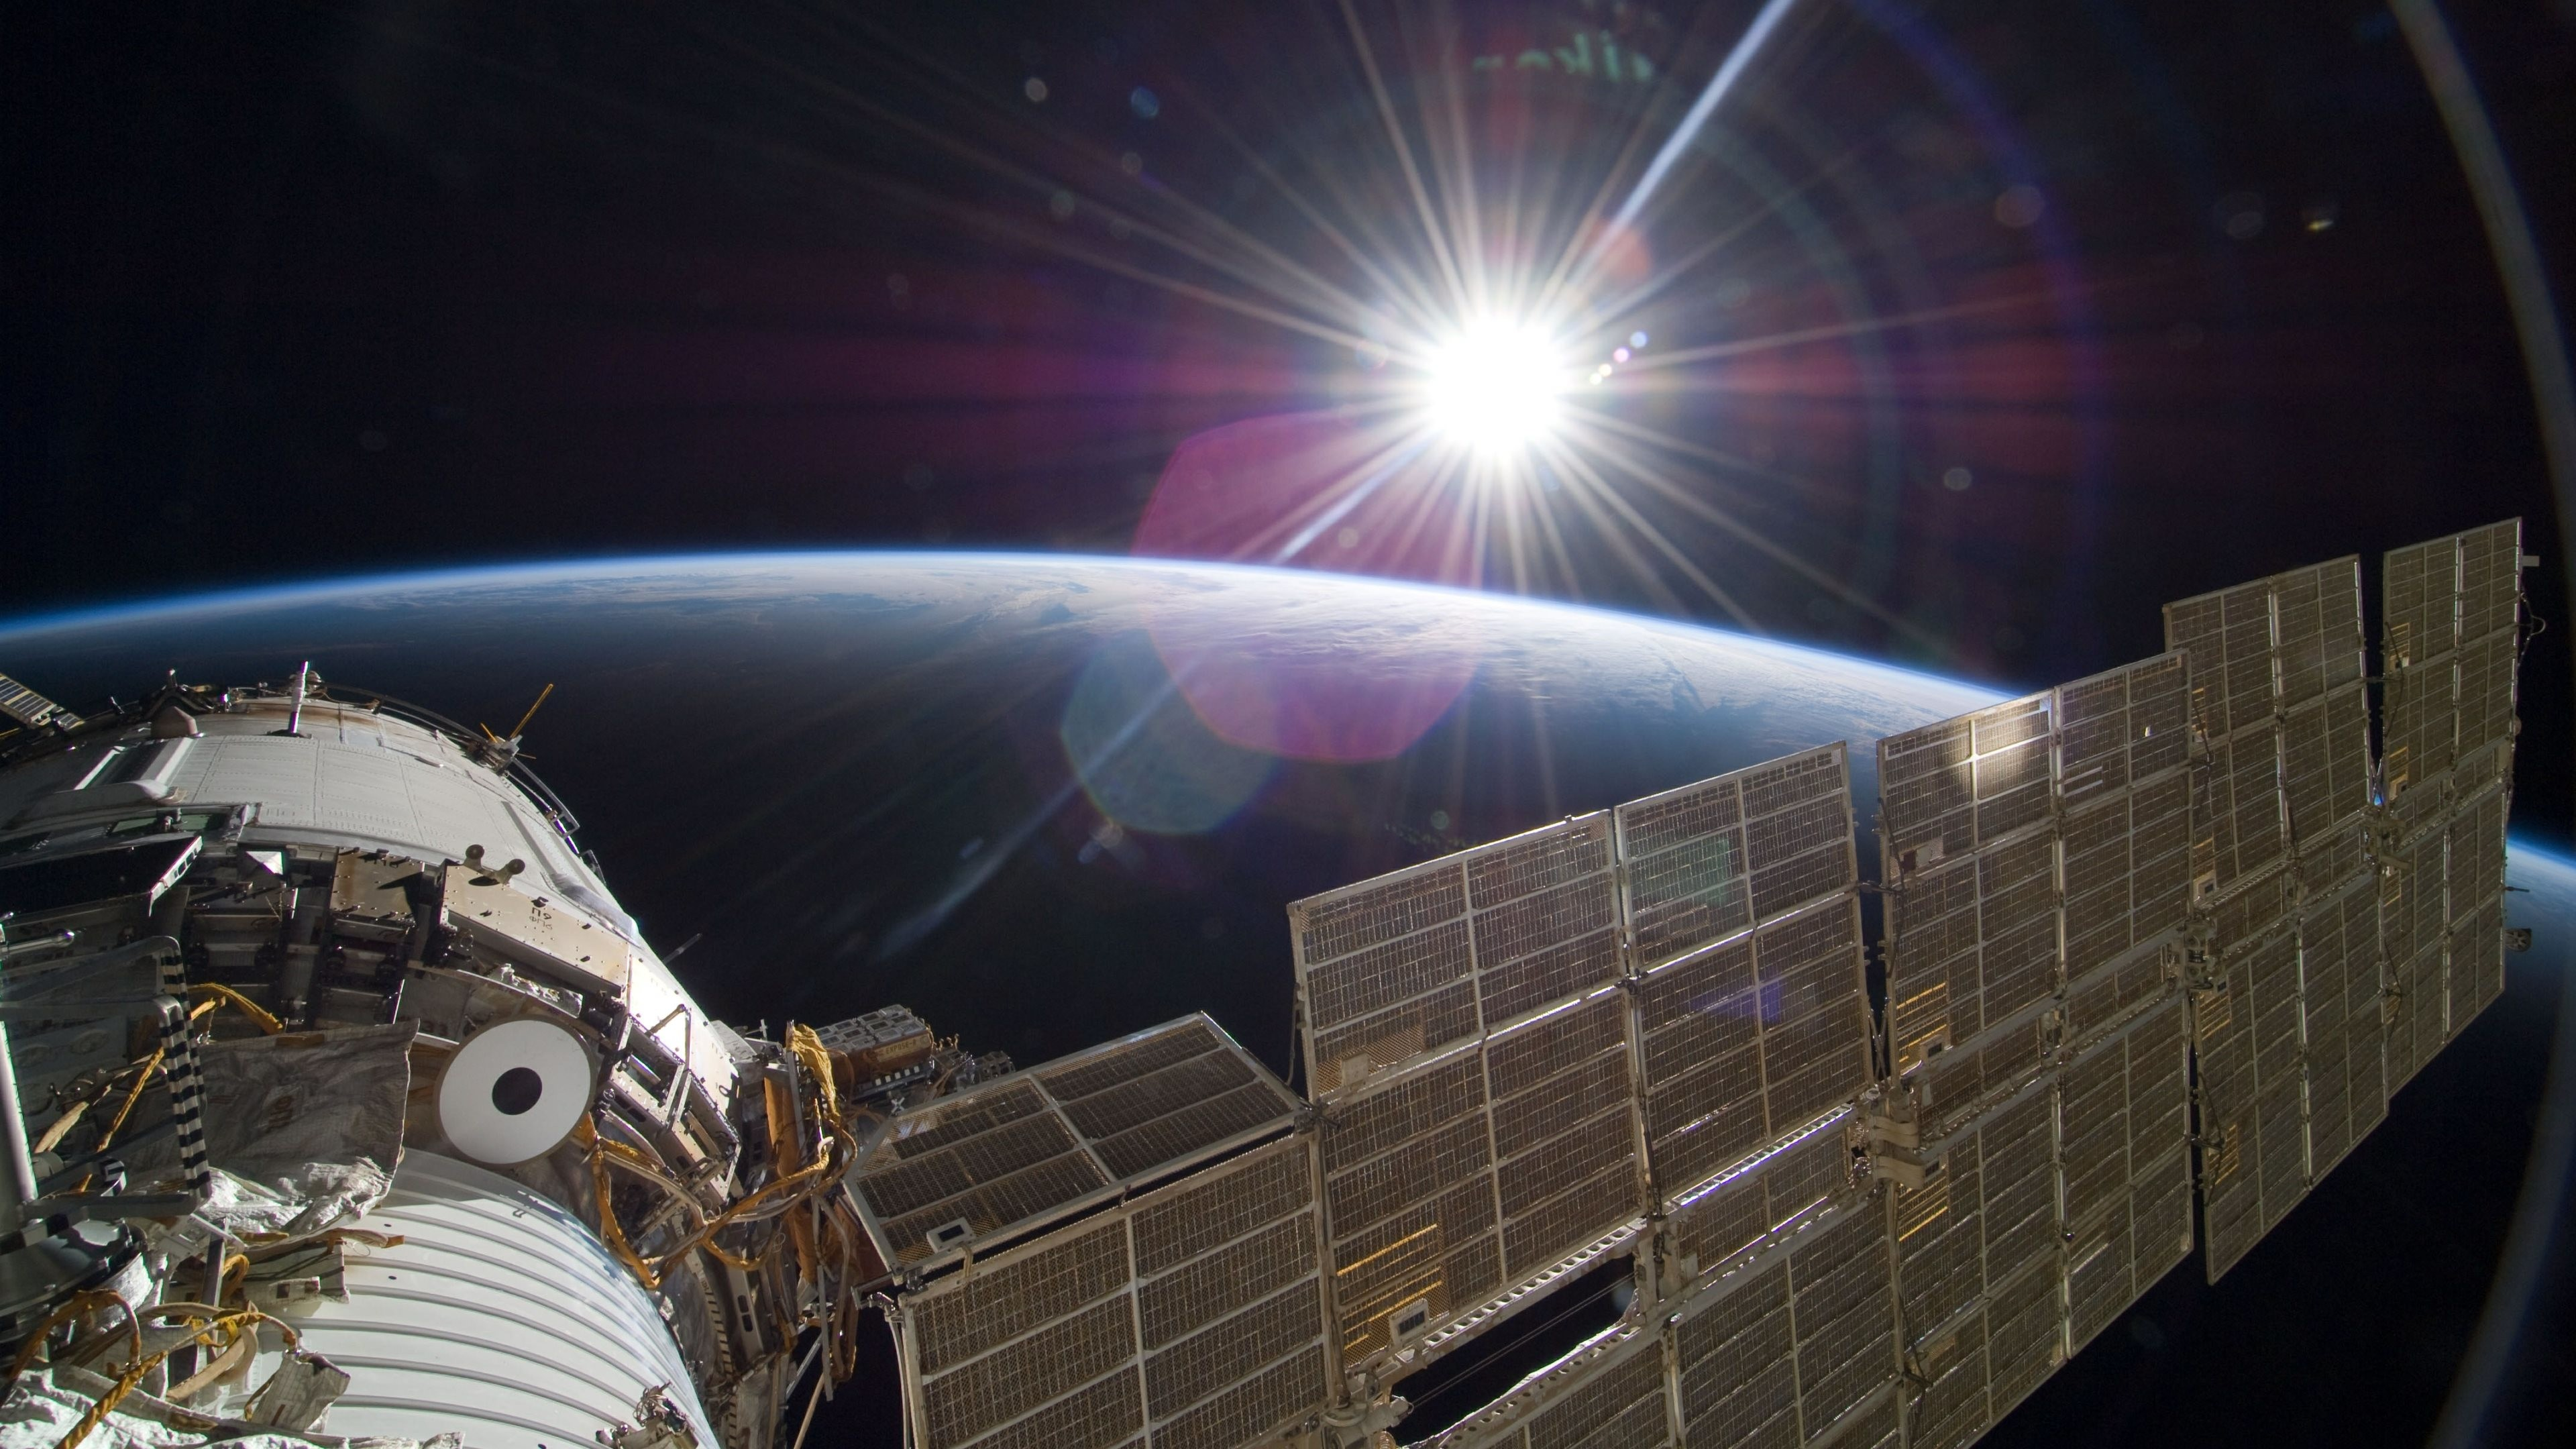 3840x2160 4K HD Wallpaper: Sun Over Earth (NASA, International Space Station Science)